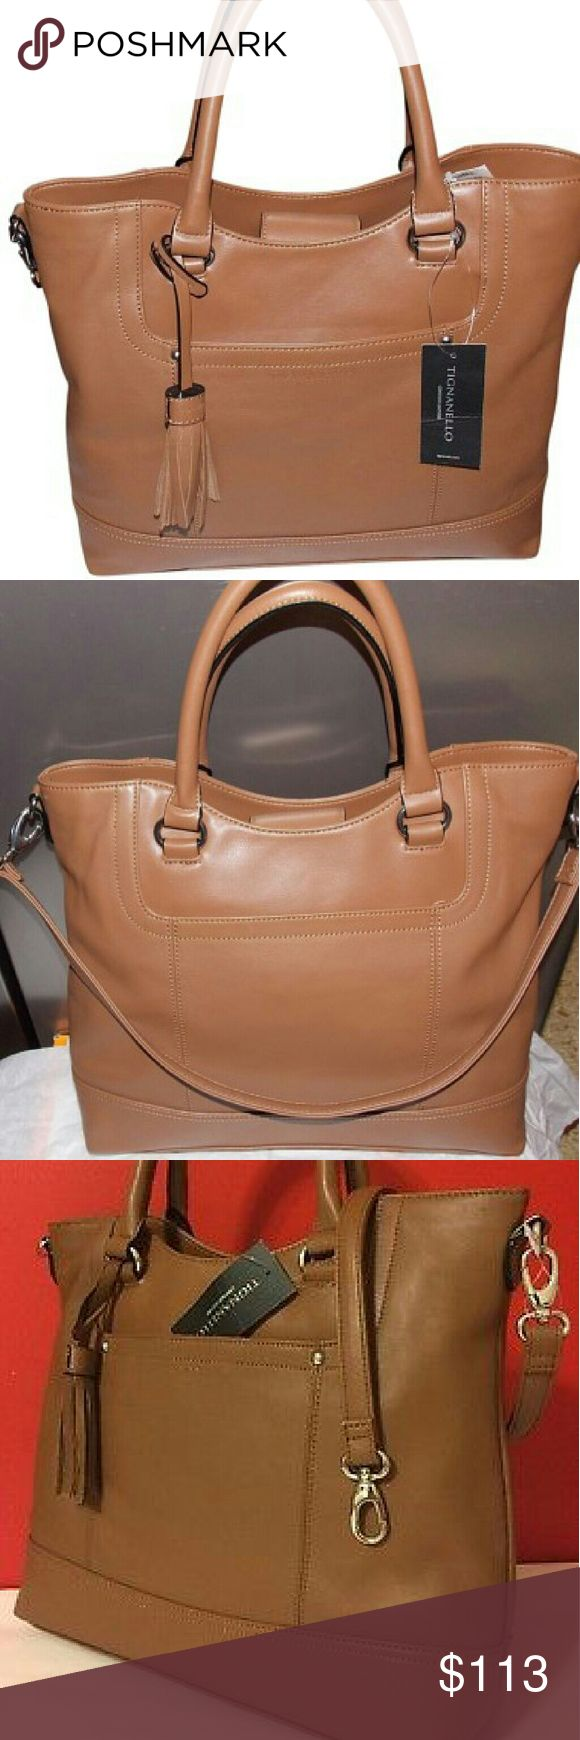 "🎁 NWT NEW Saddle Leather Shopper Tote Bag Purse New with tags 100% Leather NEW Tignanello Handbag Shopper Tote RETAIL $175.00 + tax = $192.00 Brand New with Tags Attached  EXTERIOR  Genuine Leather  Approx. Measures 12"" W x 14"" H x 3.5"" DDouble rolled handles with approx. 6"" drop Detachable shoulder strap with approx. 12"" drop Magnetic snap bridge closure Polished silver-tone hardware Detachable saddle leather tassel One front slip pocket Tignanello Bags Shoulder Bags"